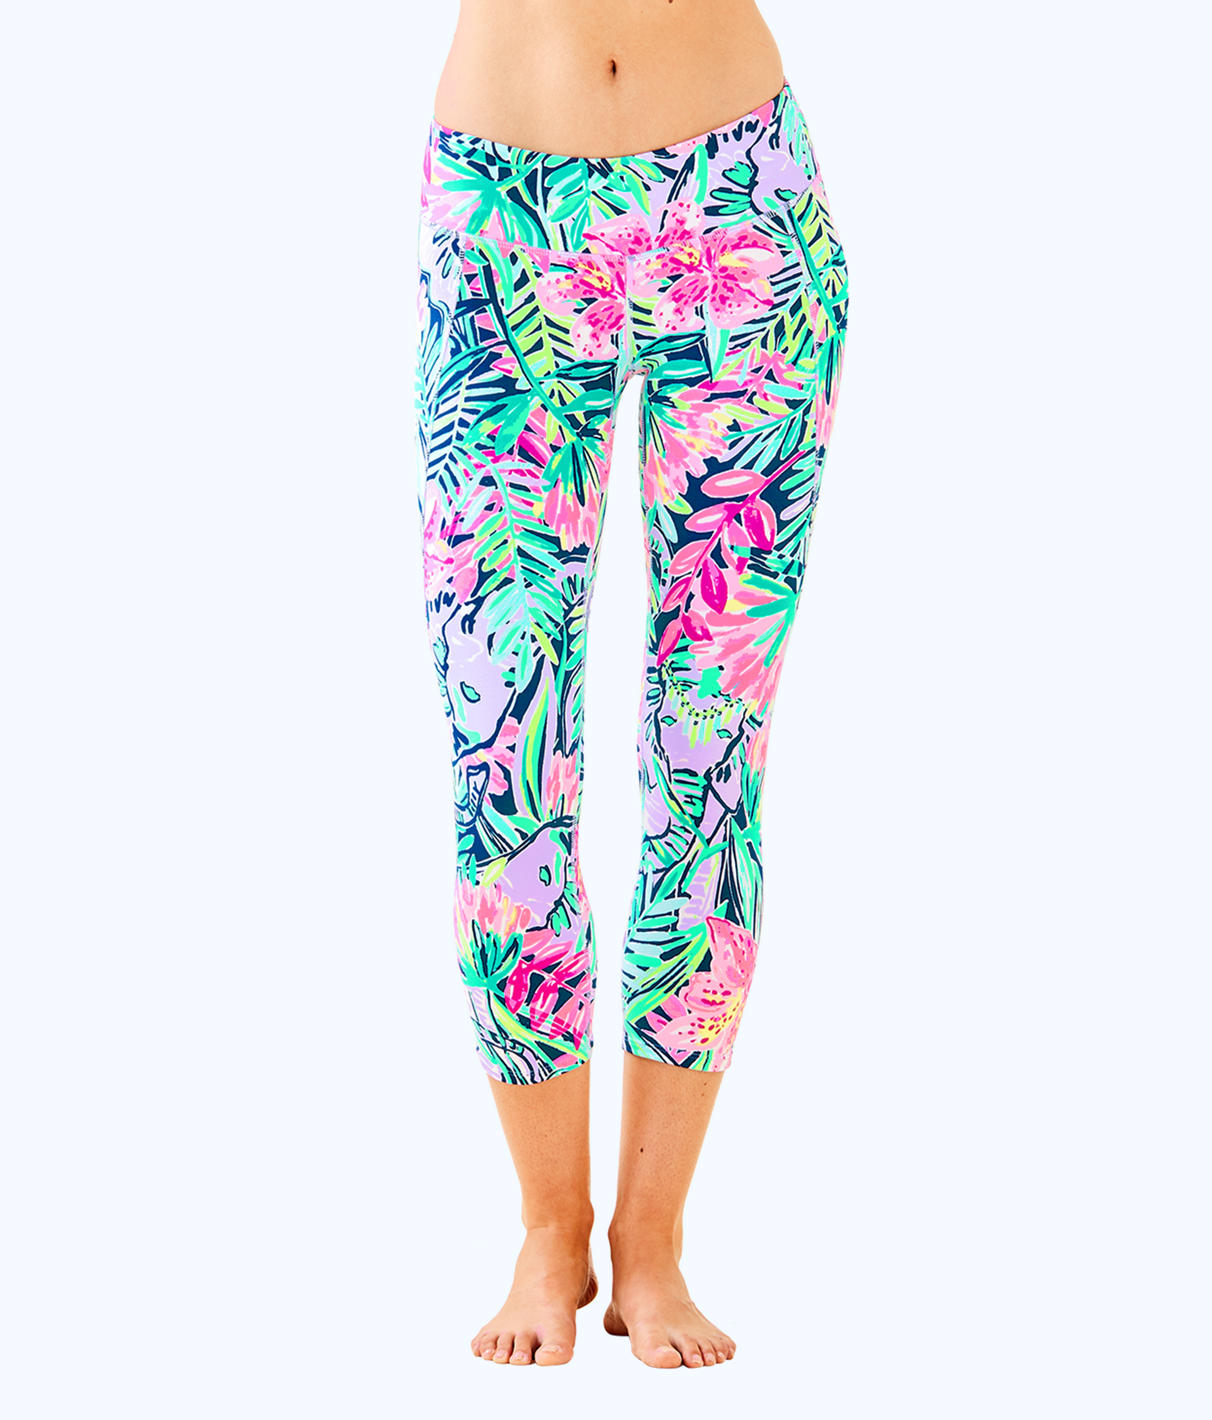 Lilly Pulitzer Luxletic 21